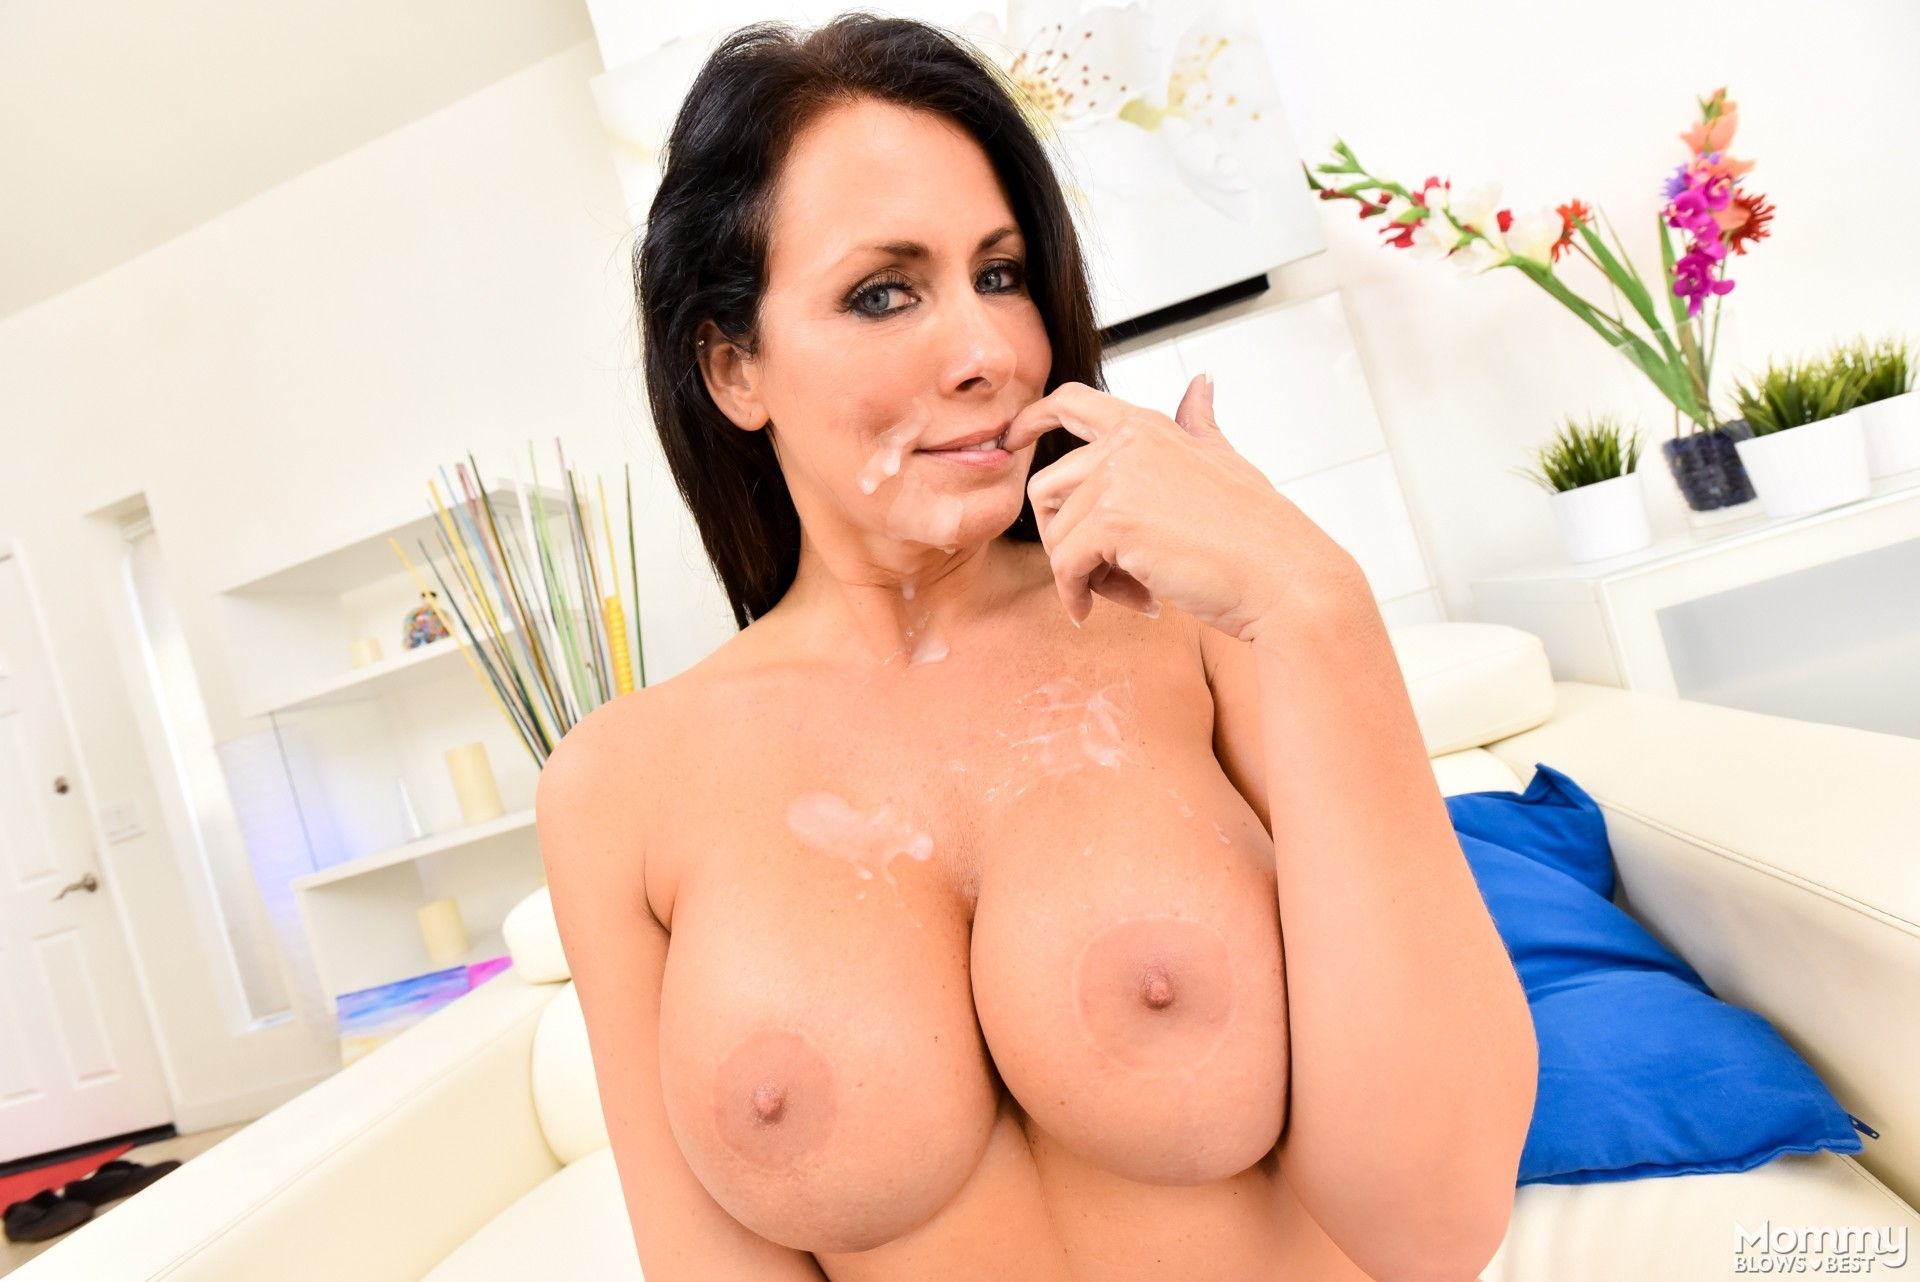 Mommy milf julia ann amp jessica jaymes get a hot load of cum 2